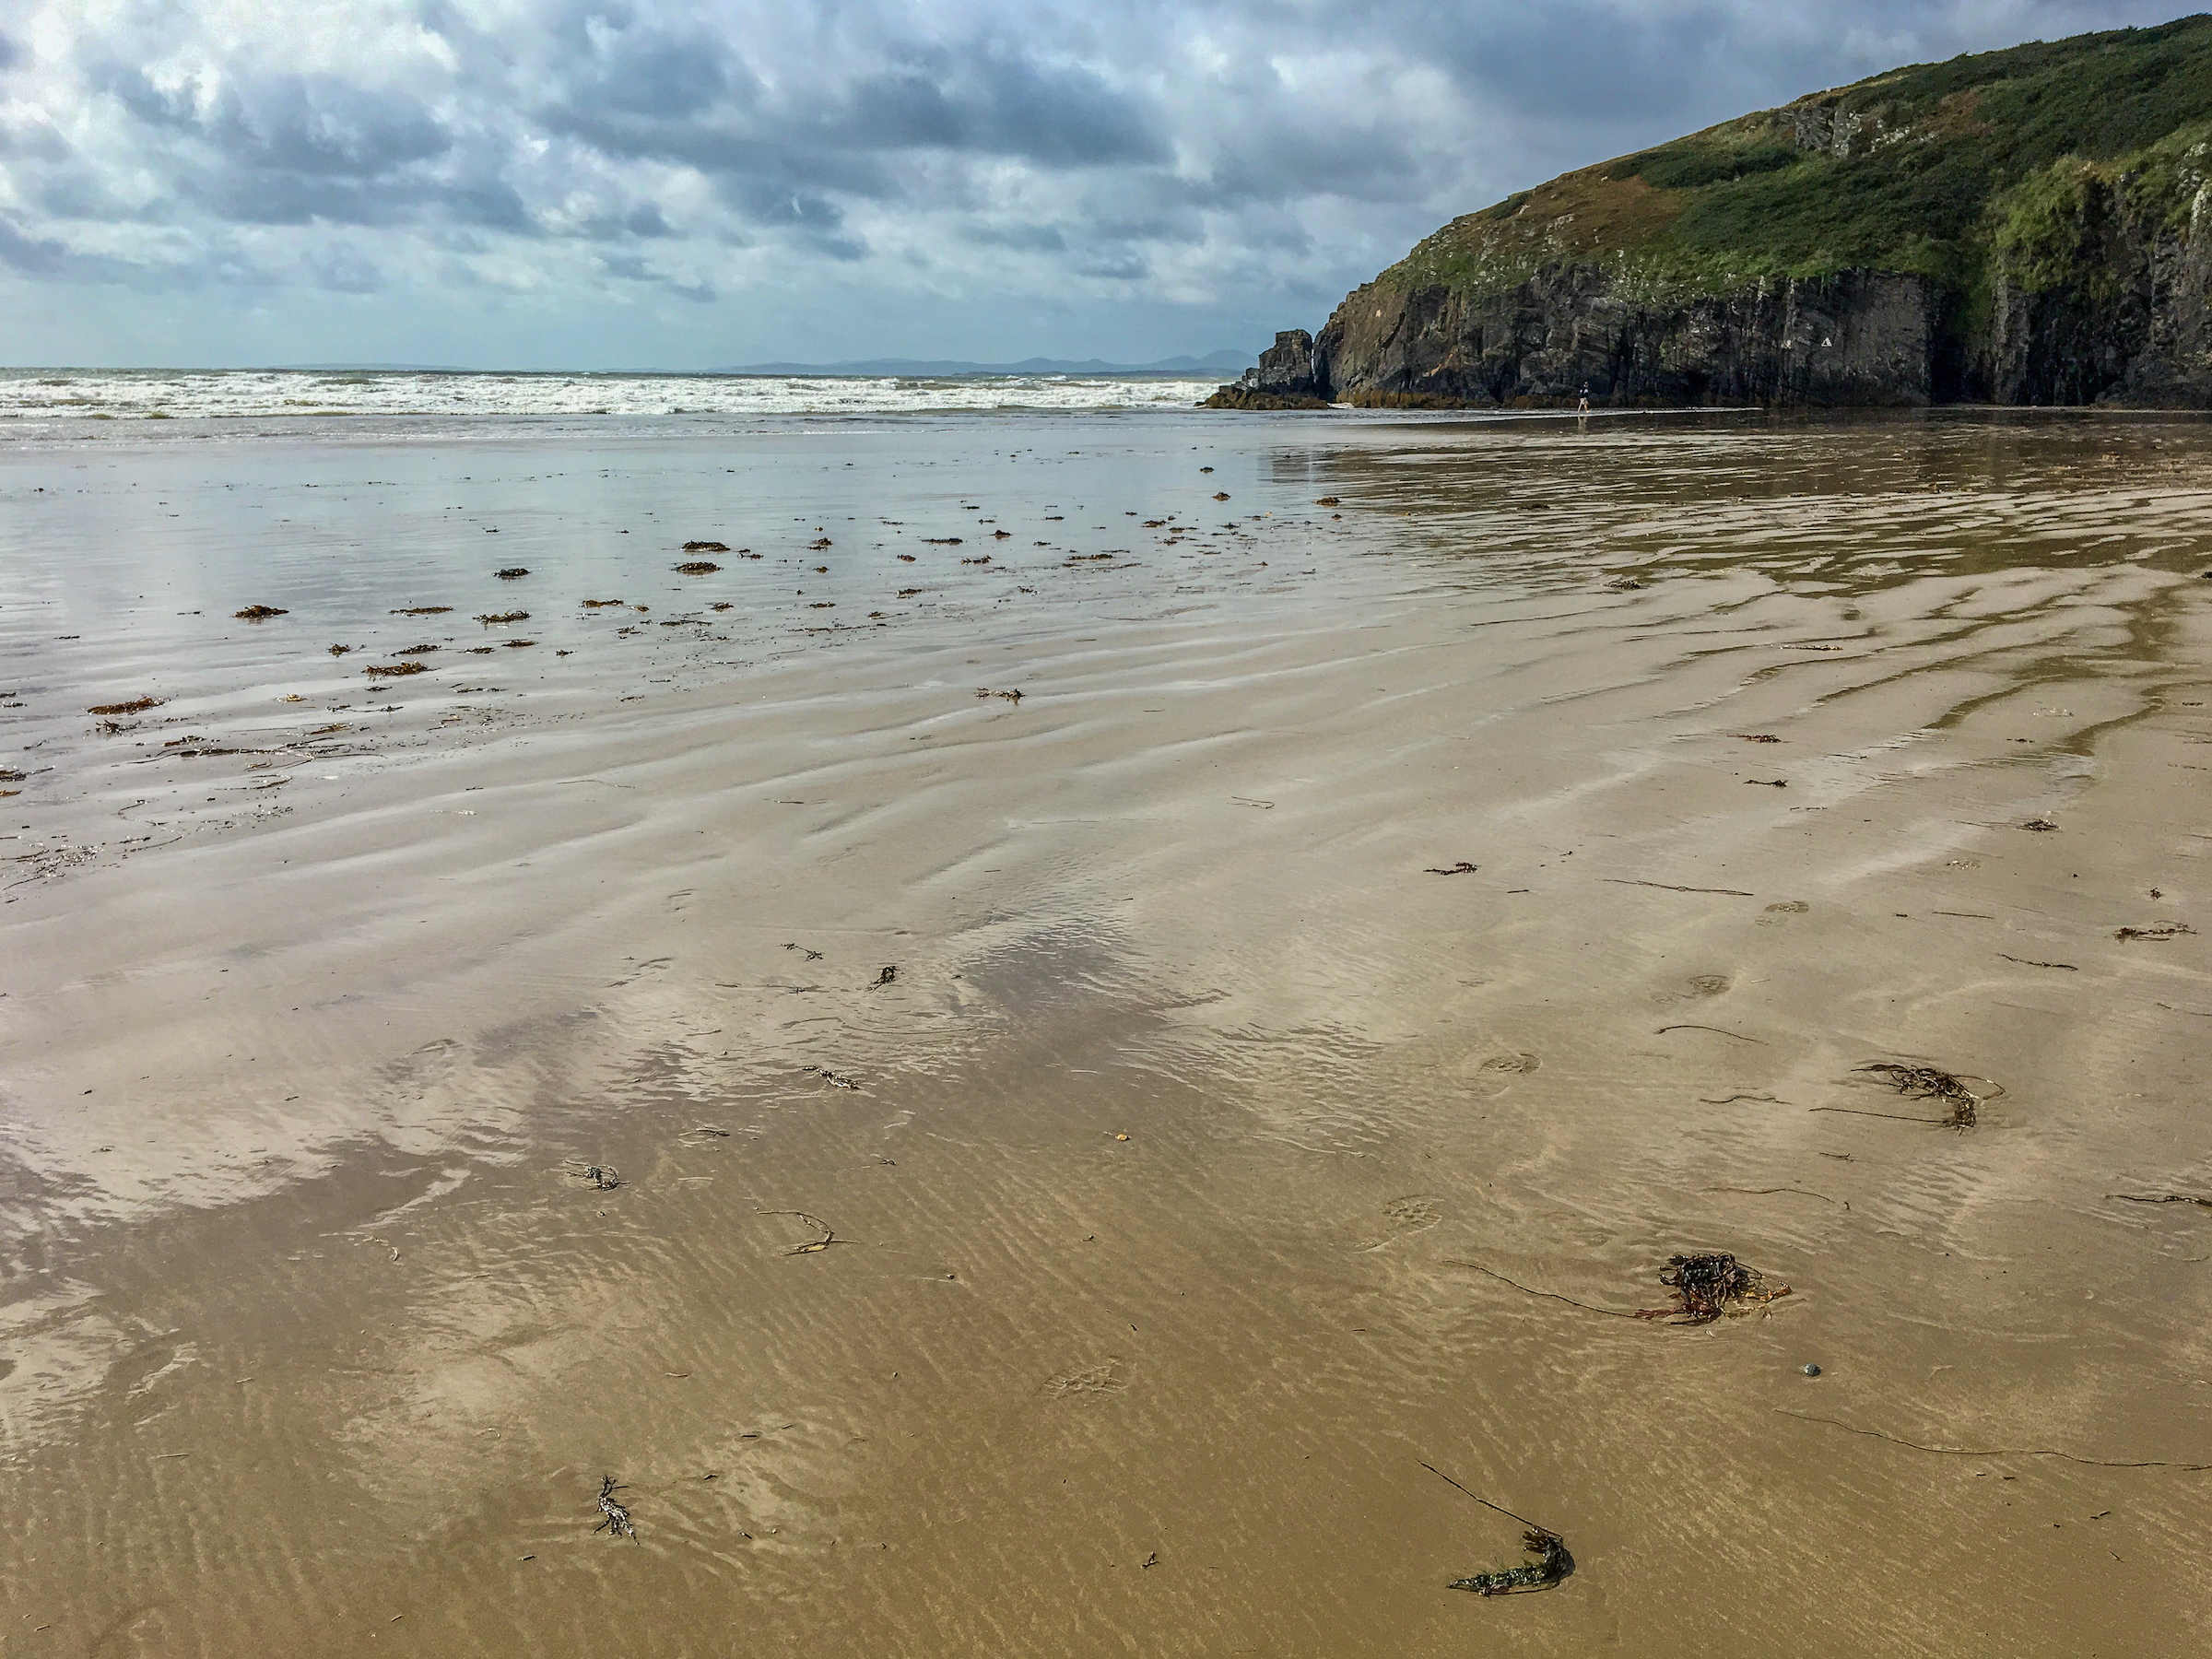 Black Rock Sands Beach • Road Trip Through Southern England and Wales | The Wanderful Me